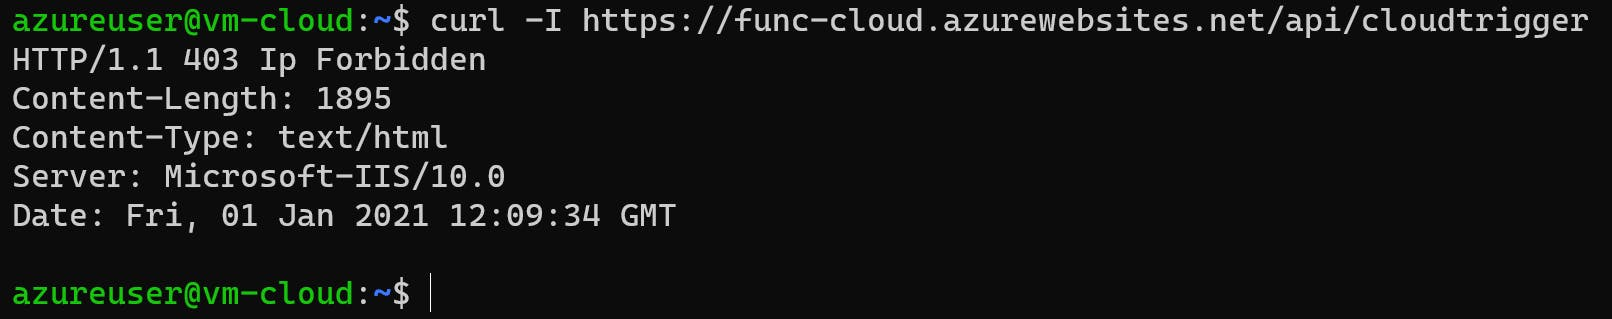 peering-function-cloud-forbidden-shell-vm-oncloud.png